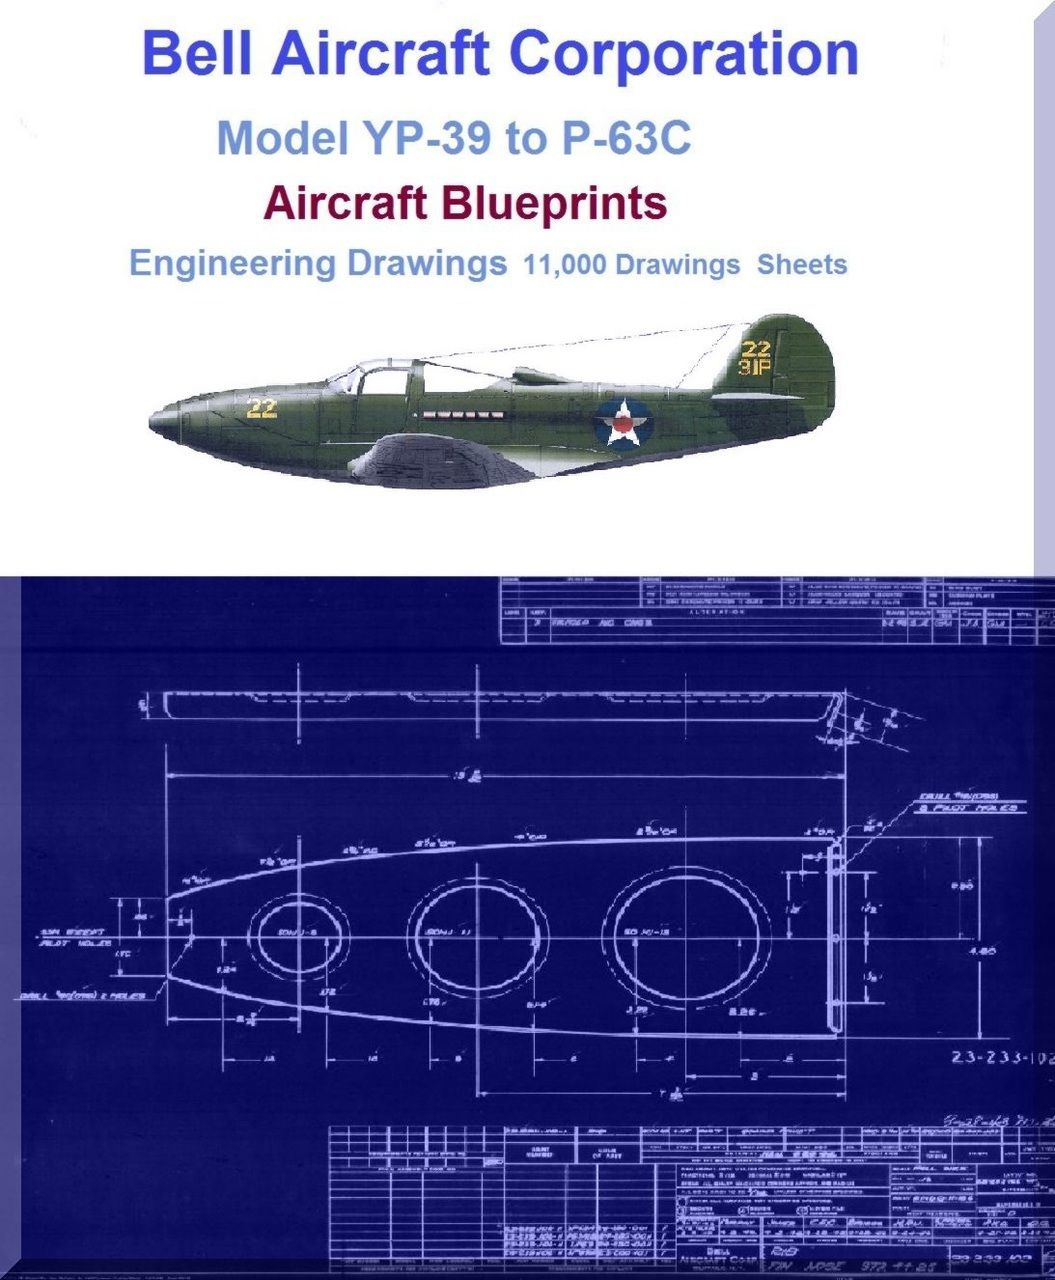 Bell aircraft corporation model p 39 to p 63 aircraft blueprints bell aircraft corporation model p 39 to p 63 aircraft blueprints engineering drawings on dvds malvernweather Choice Image